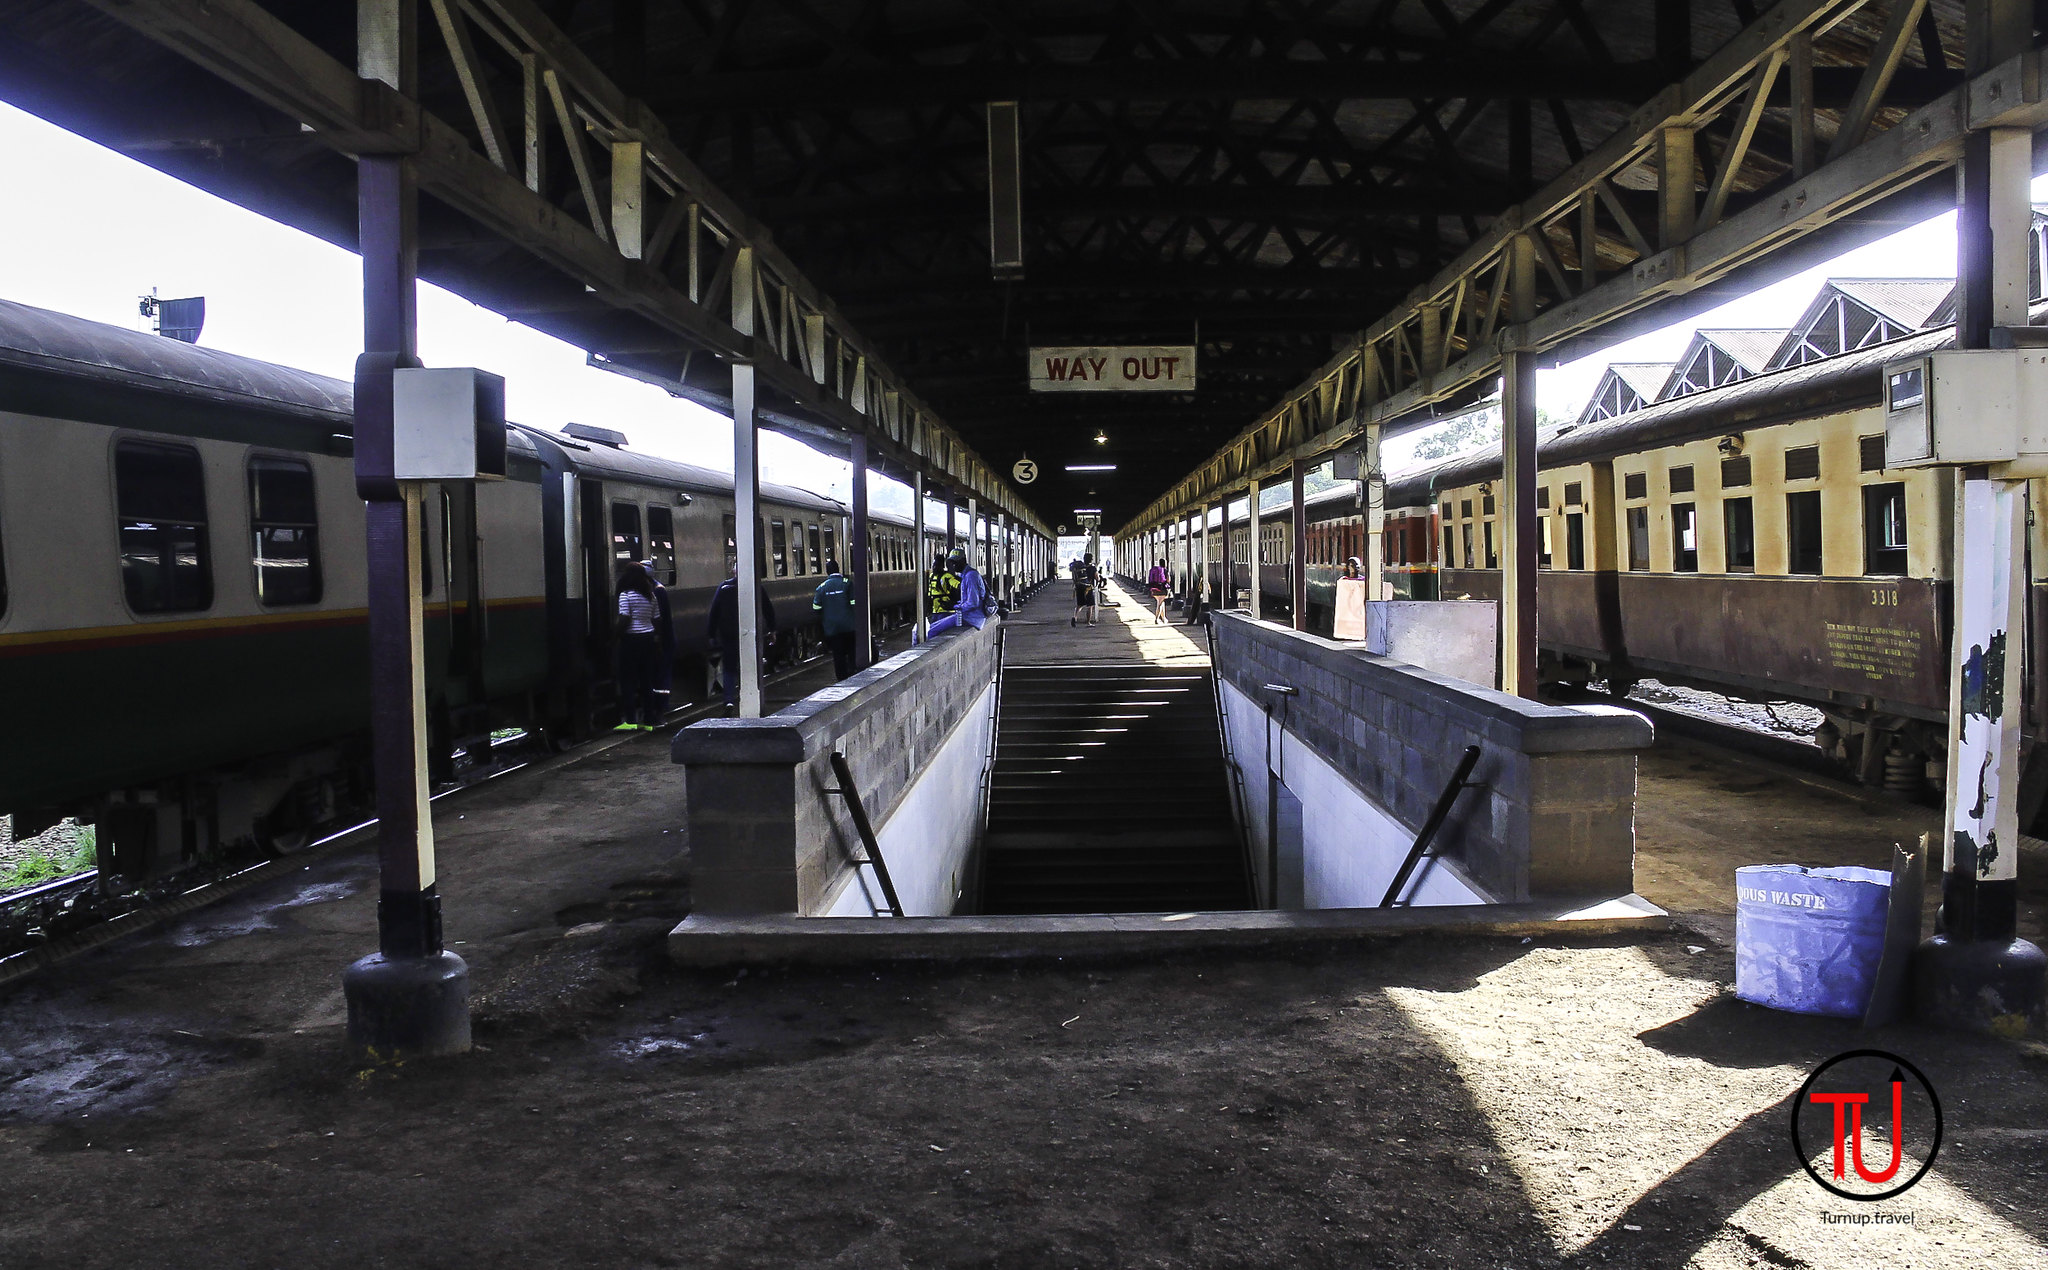 Down the stairs and onto Platform 3 to board the last of the Lunatic Express.